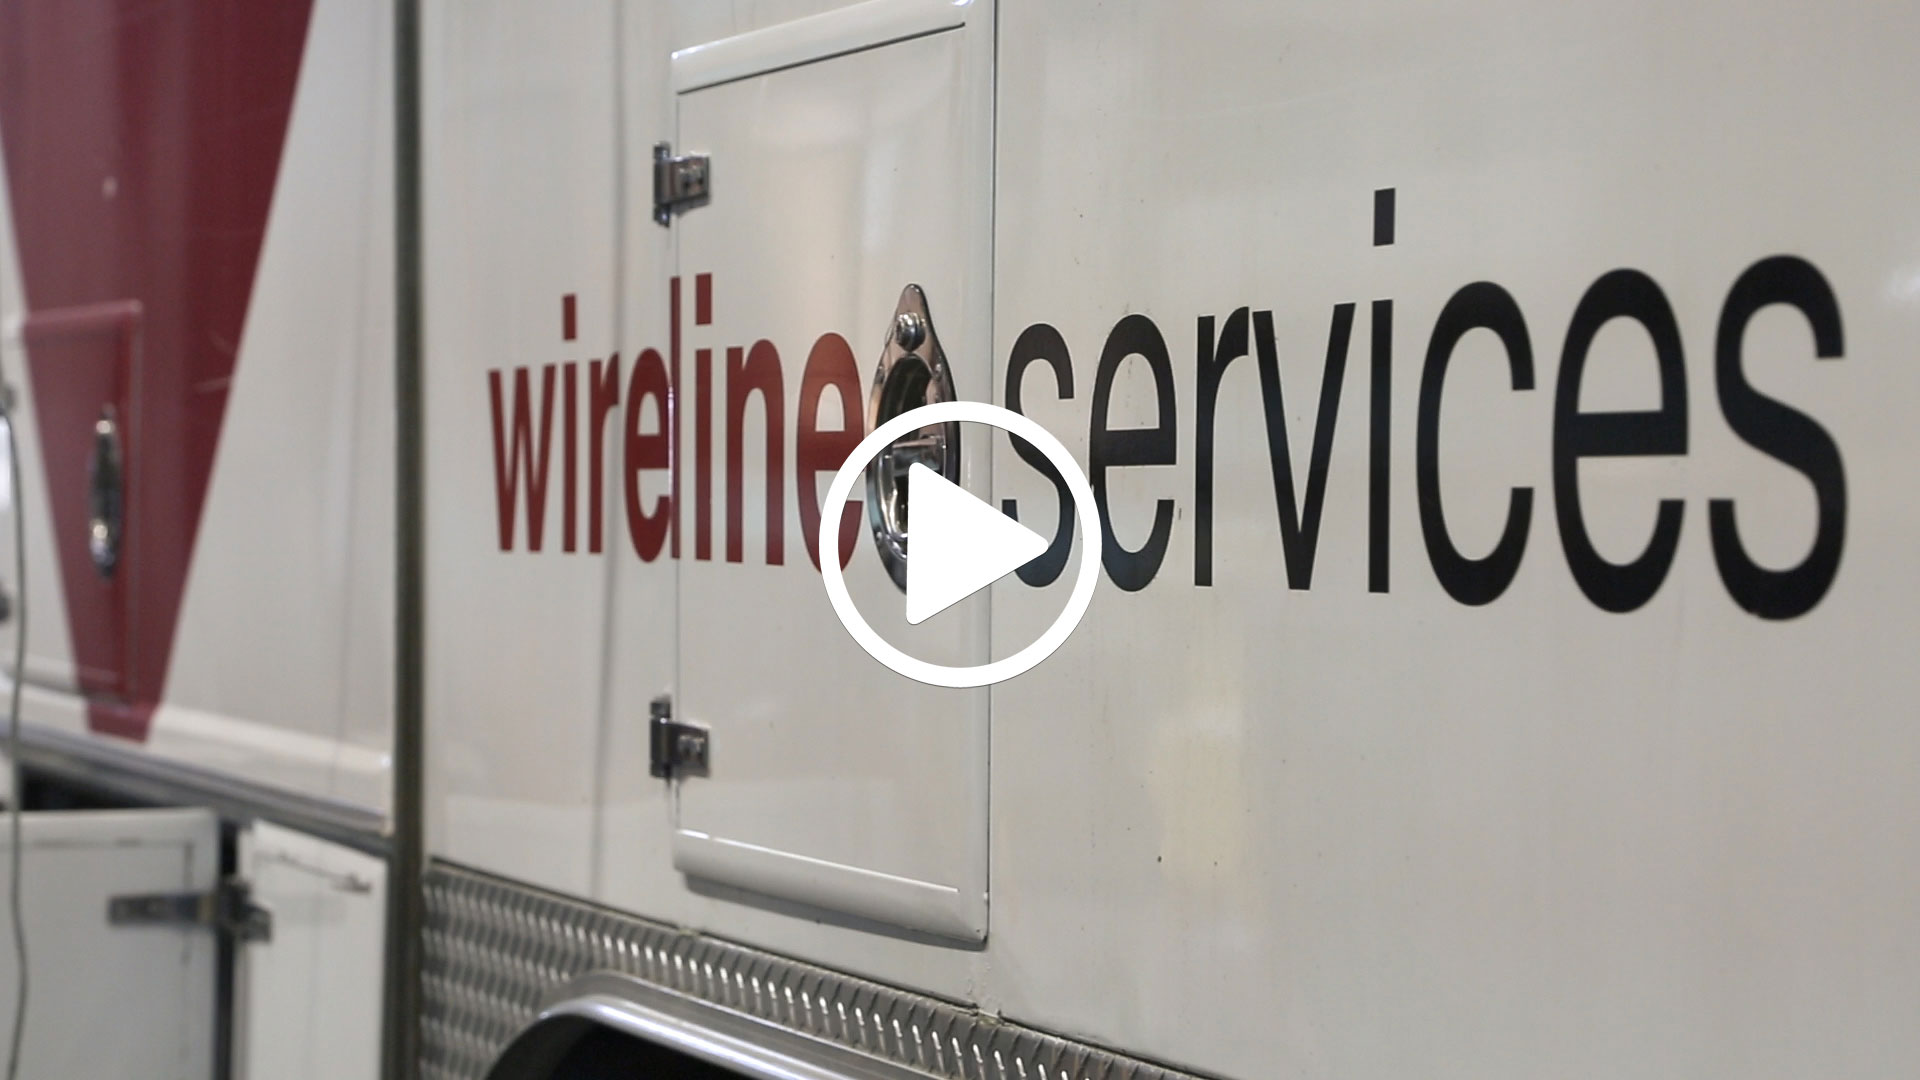 Watch our careers video for available job opening Wireline Field Operator in Youngstown, OH